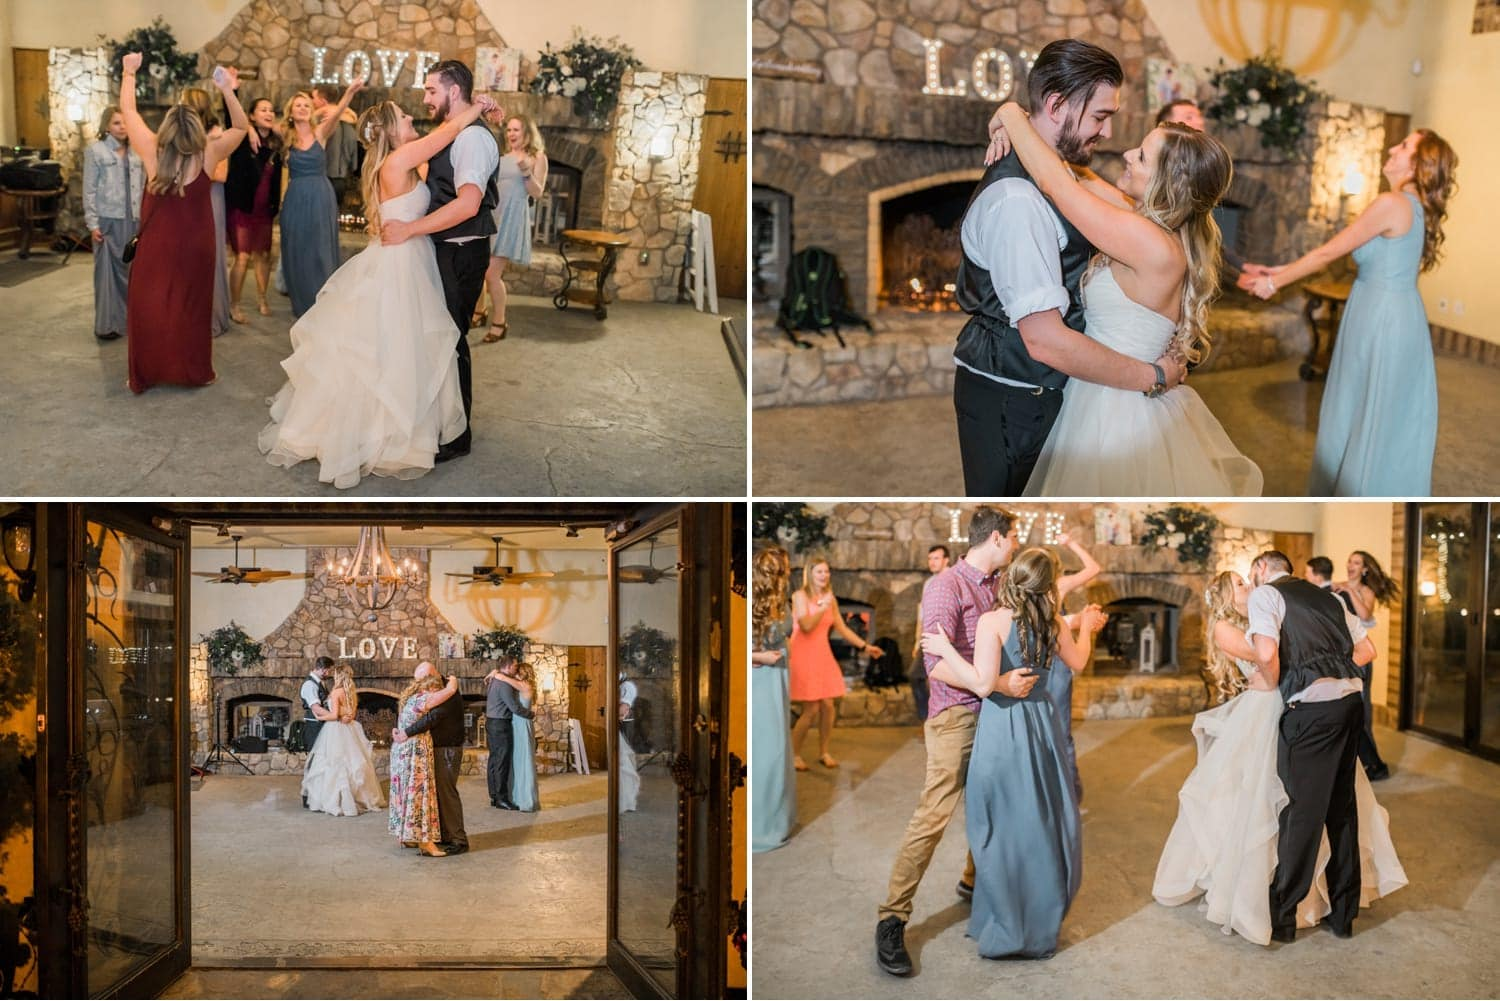 Couples dancing at the wedding reception.